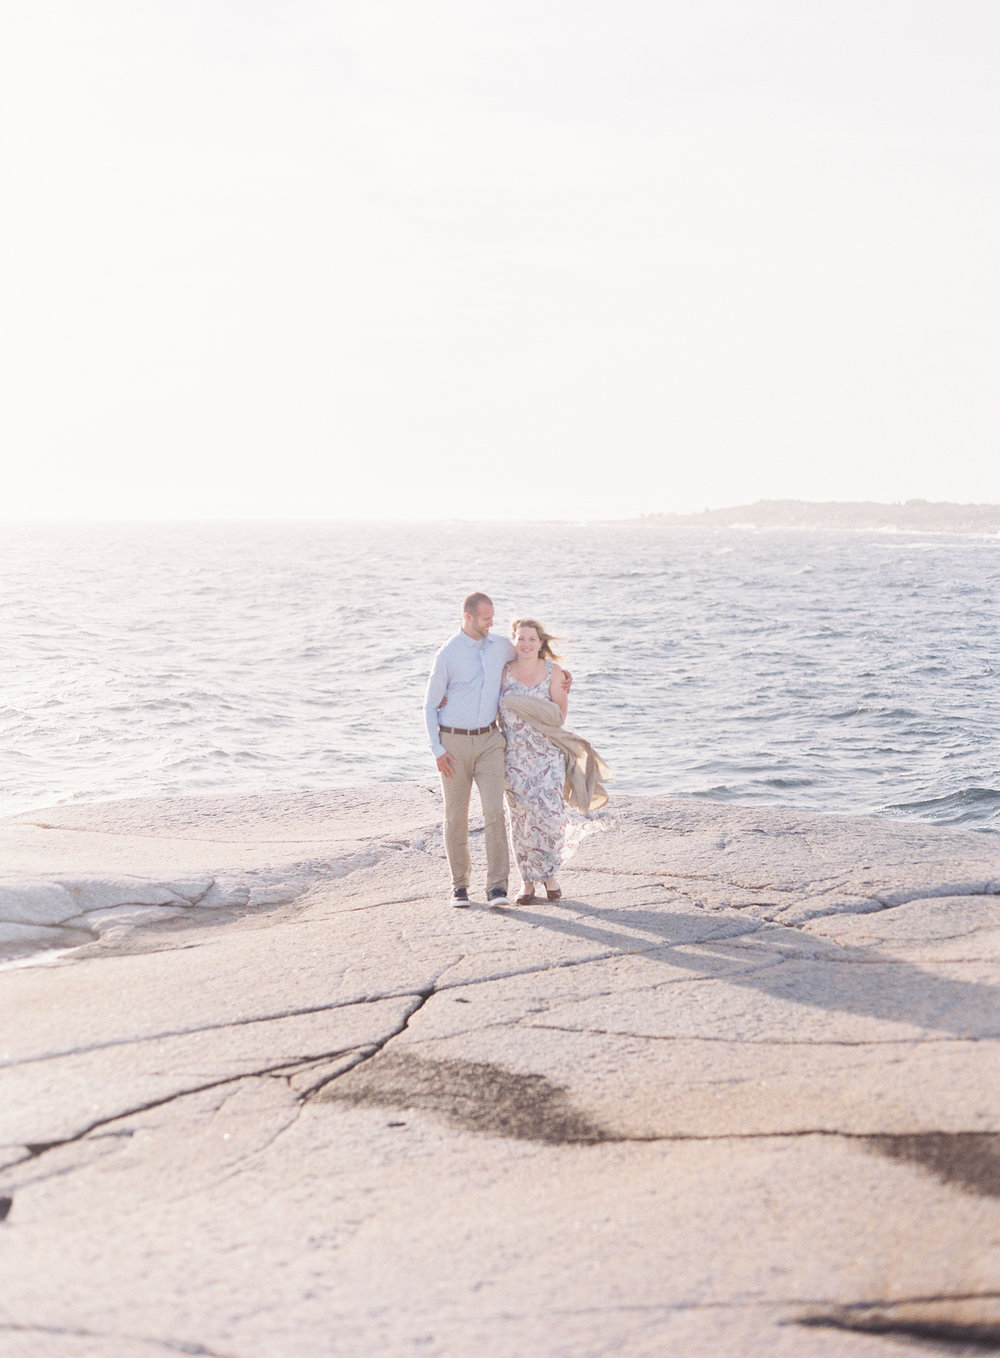 Jacqueline Anne Photography - Alex and Andrew Engagement at Peggy's Cove - Halifax-87.jpg